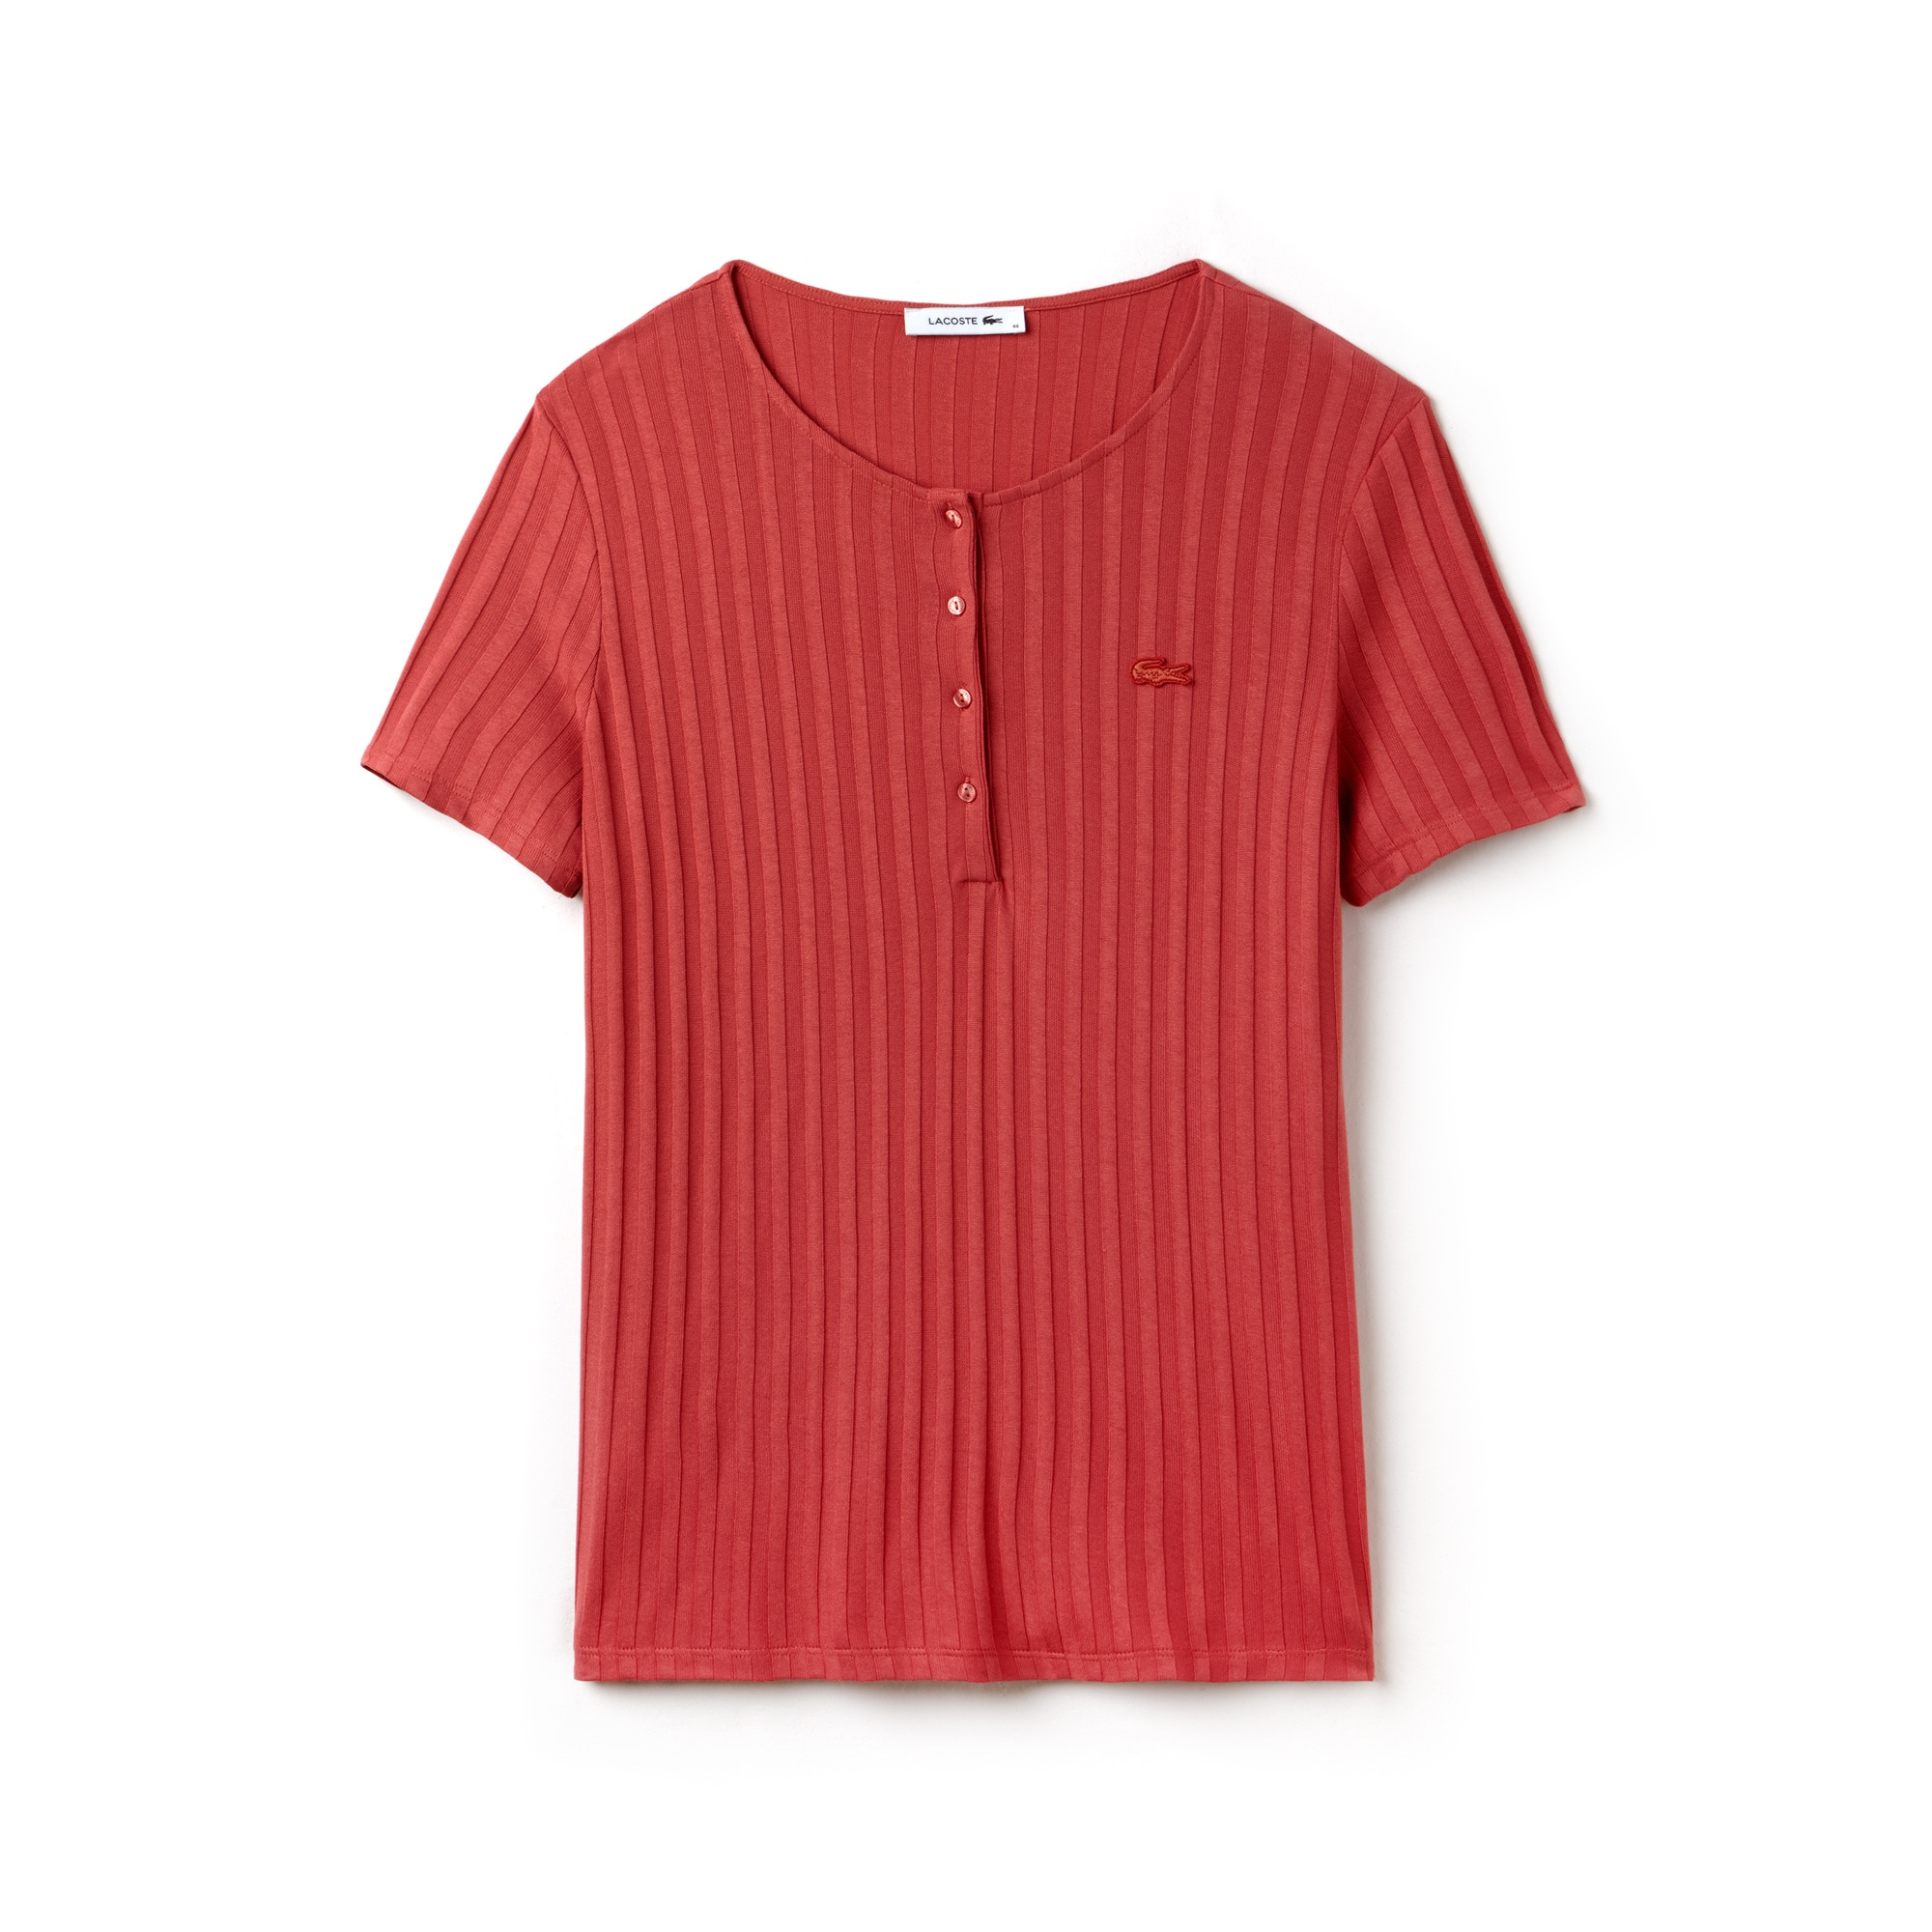 Women's Henley Neck Ribbed Knit T-shirt